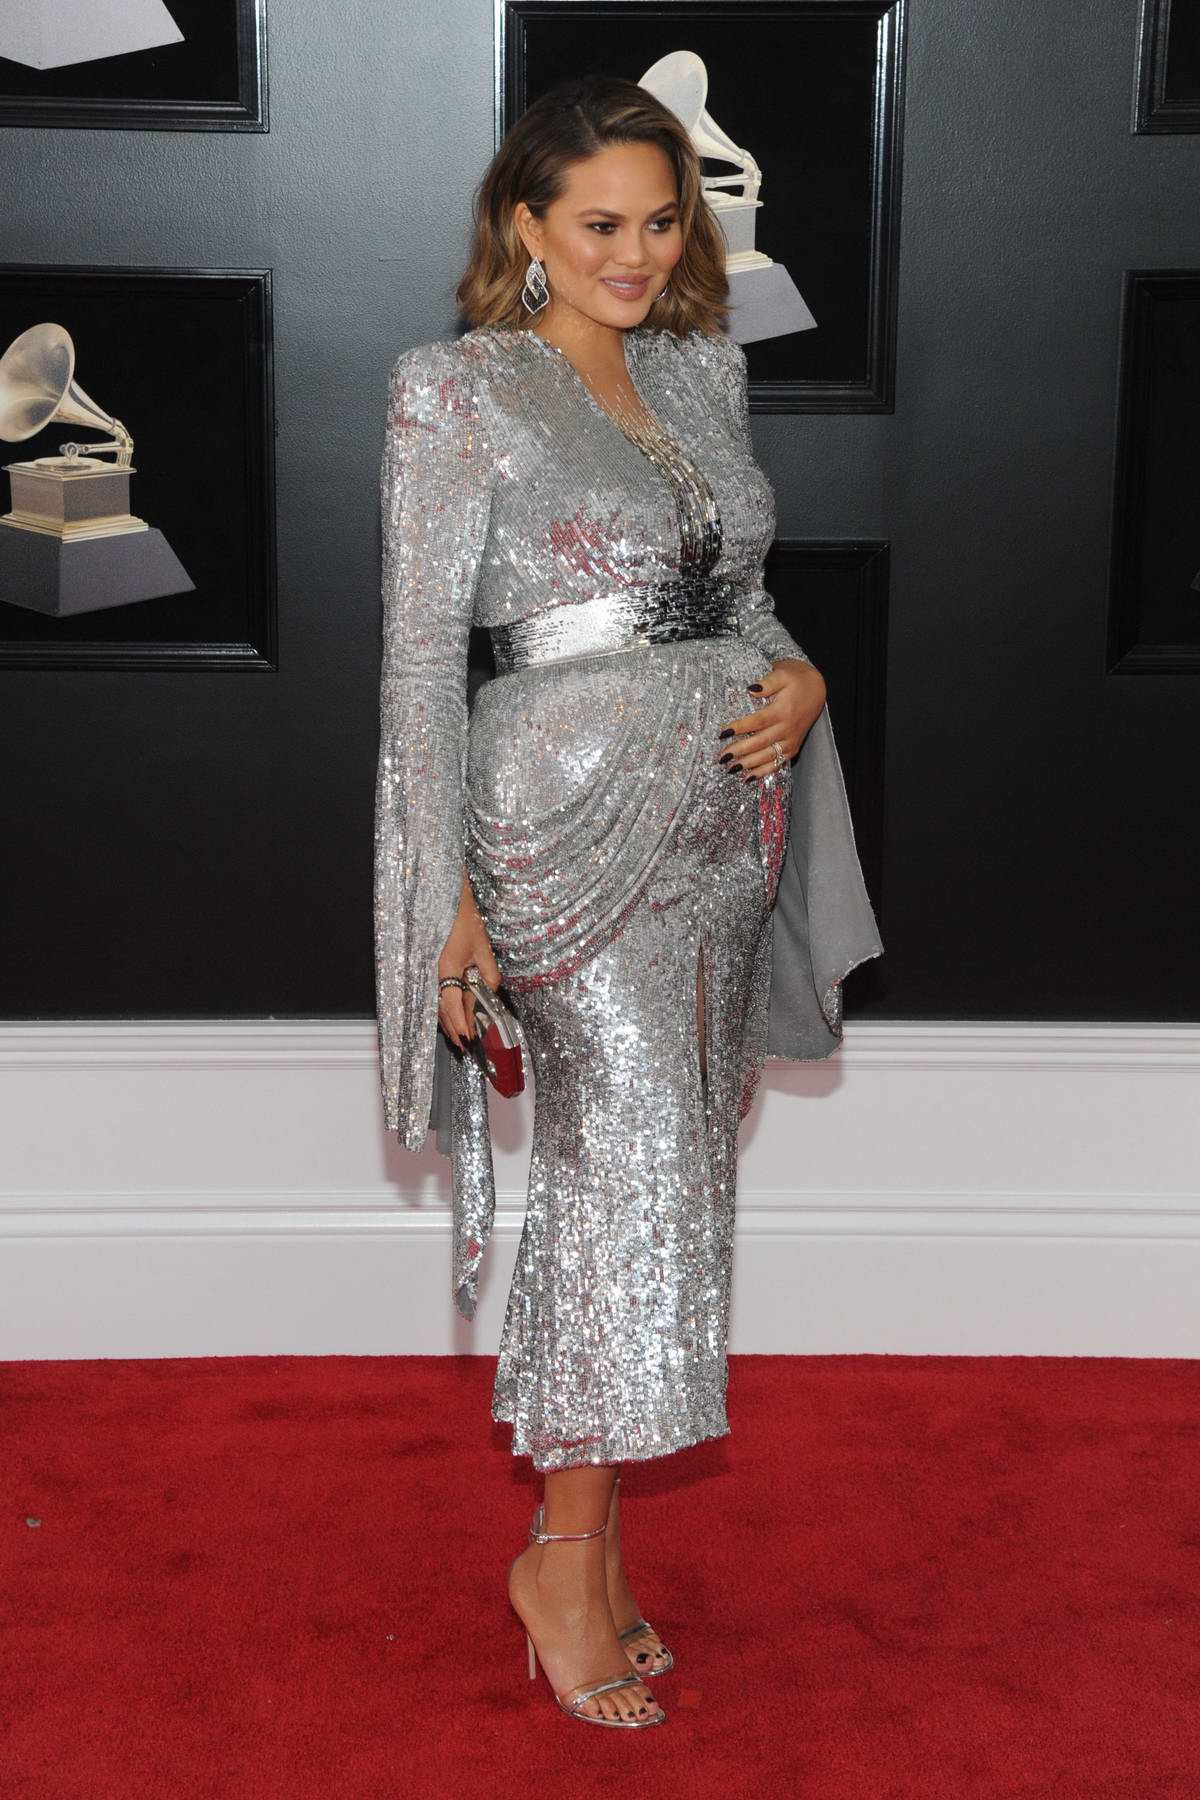 Chrissy Teigen attends the 60th Annual Grammy Awards at Madison Square Garden in New York